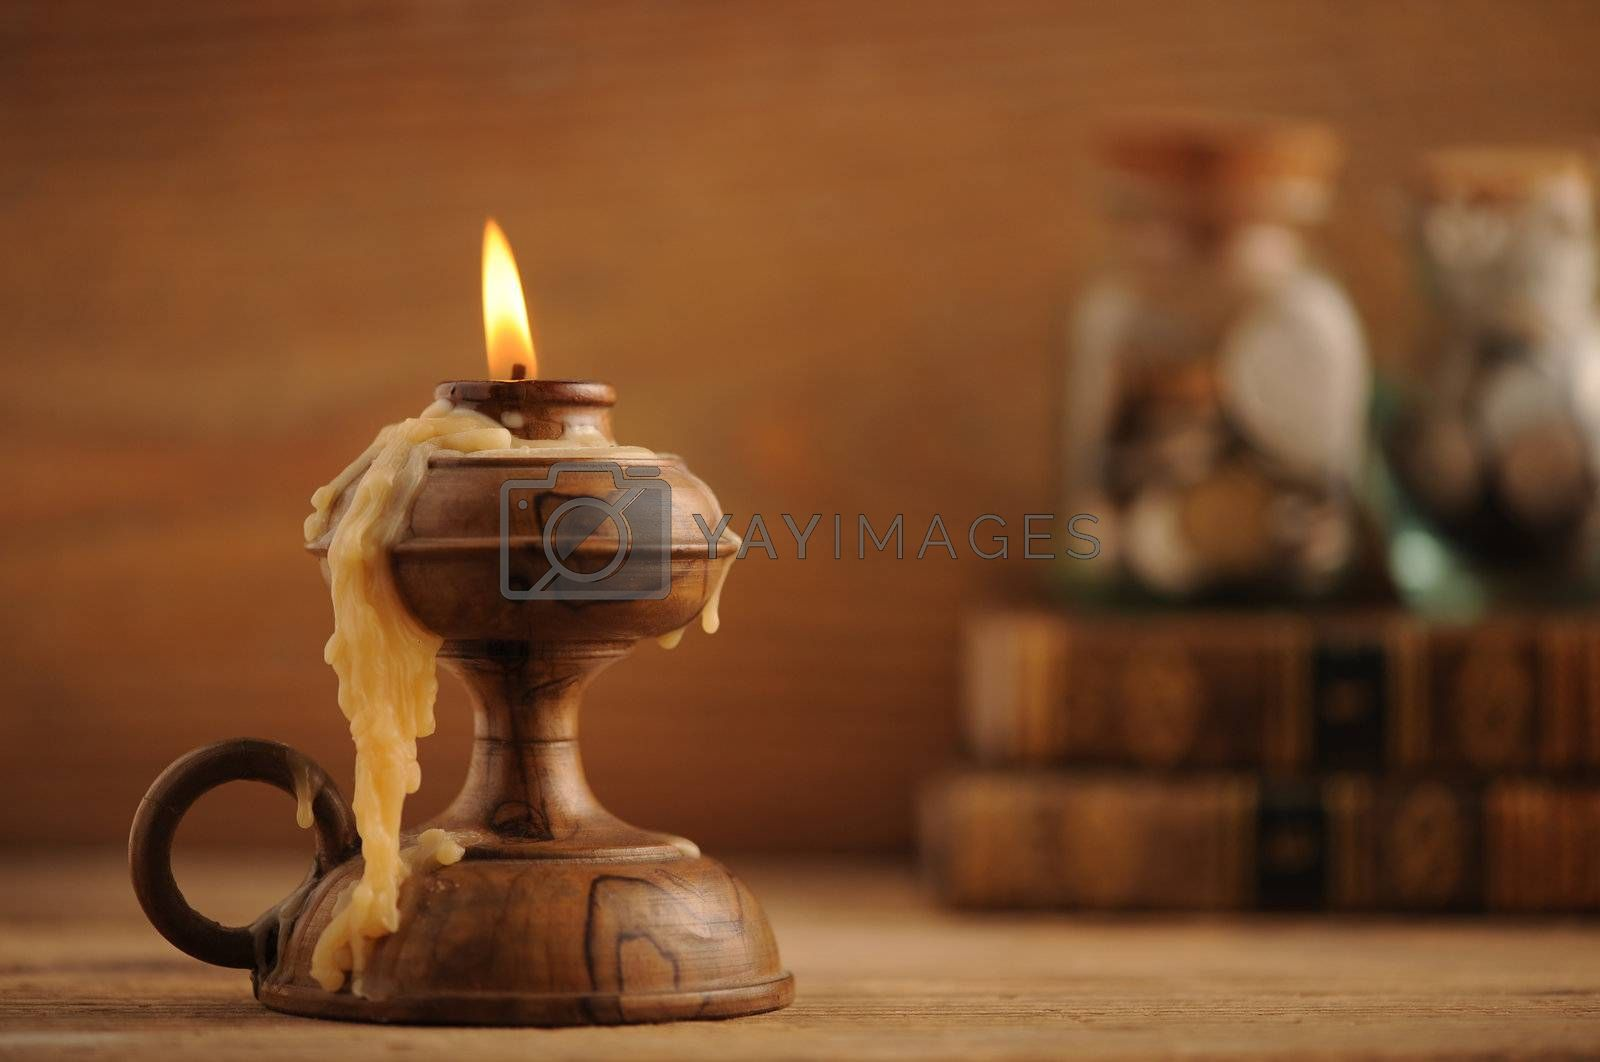 old candle on a wooden table, old books in the background